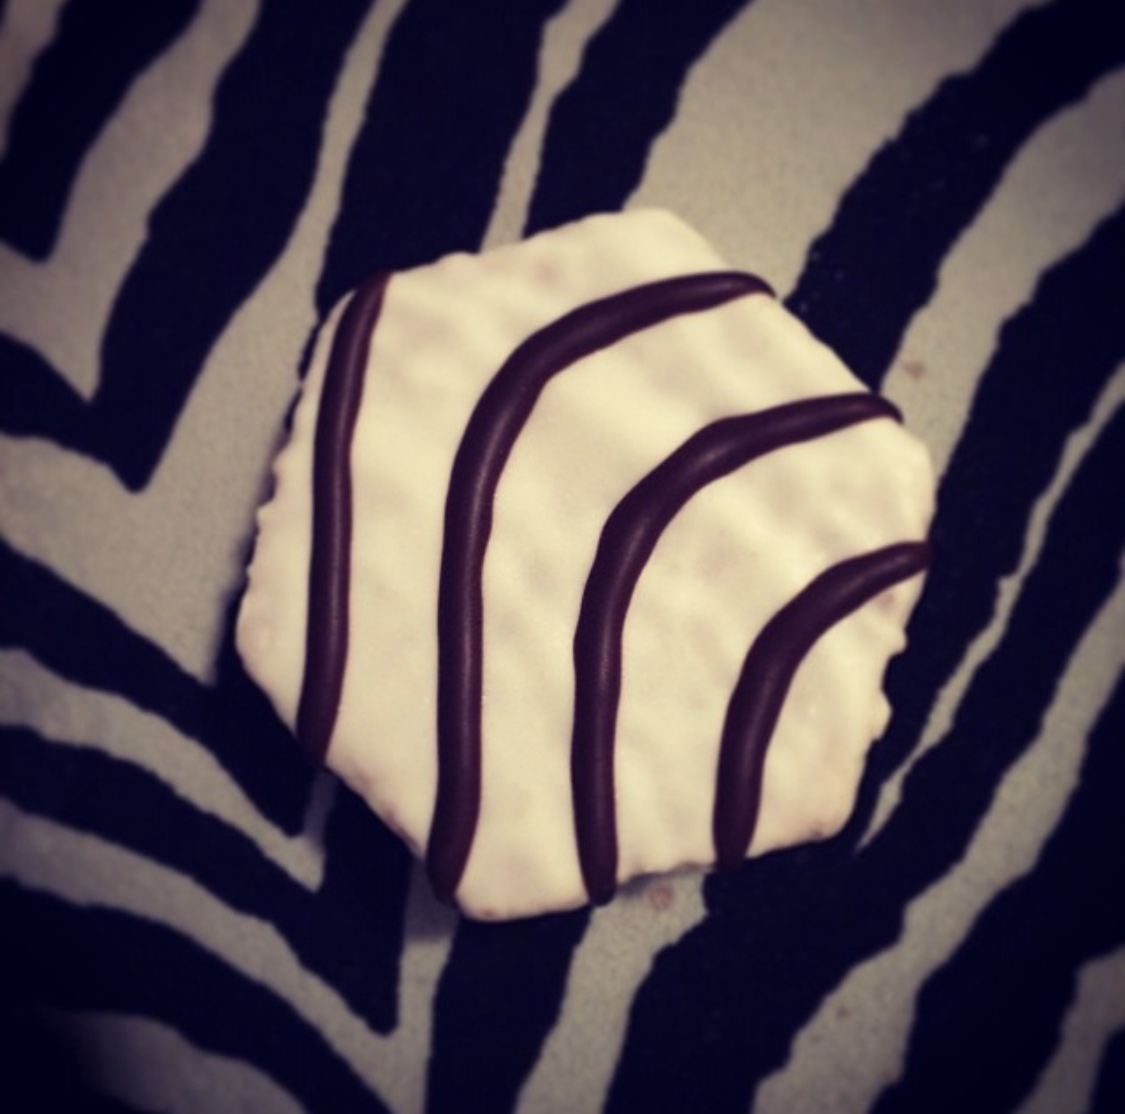 This is a zebra cake on my zebra couch. And yes, I do have a zebra couch.